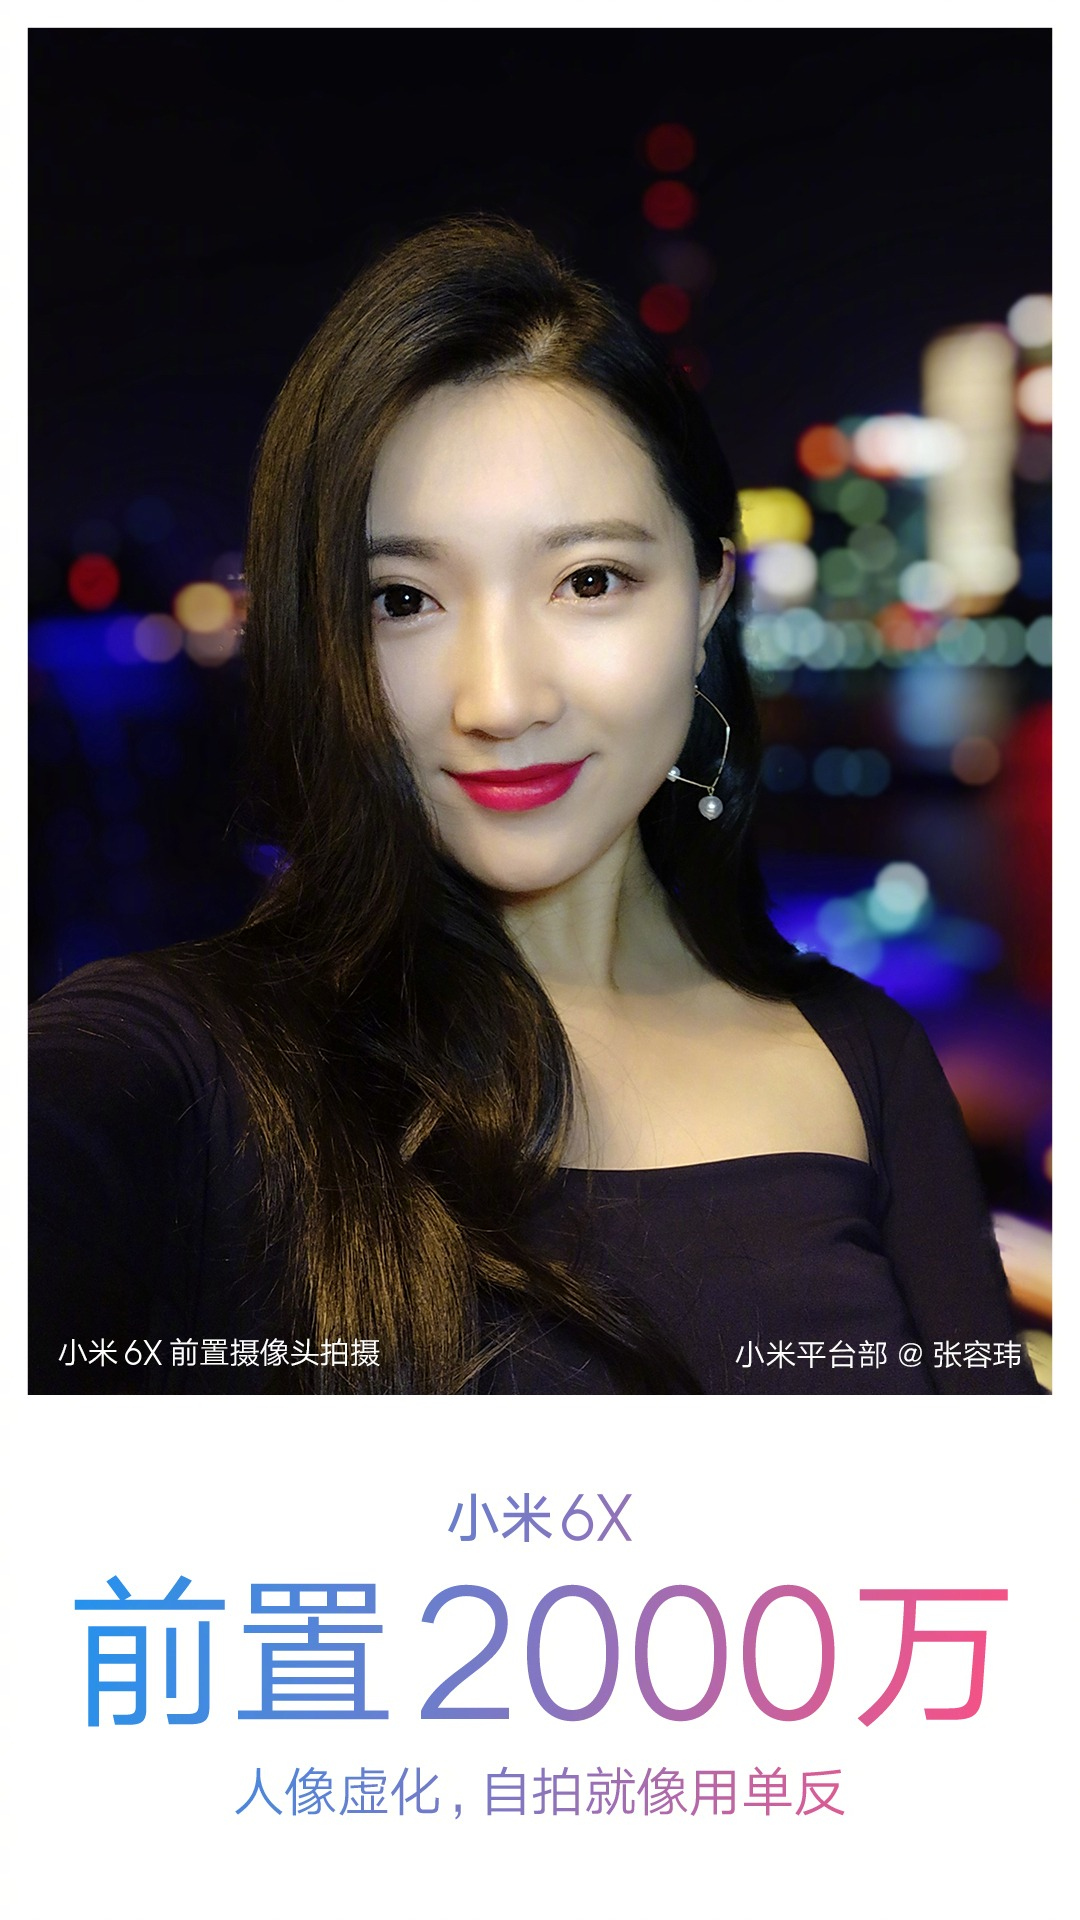 Check out these latest Xiaomi Mi 6X Camera Samples 25